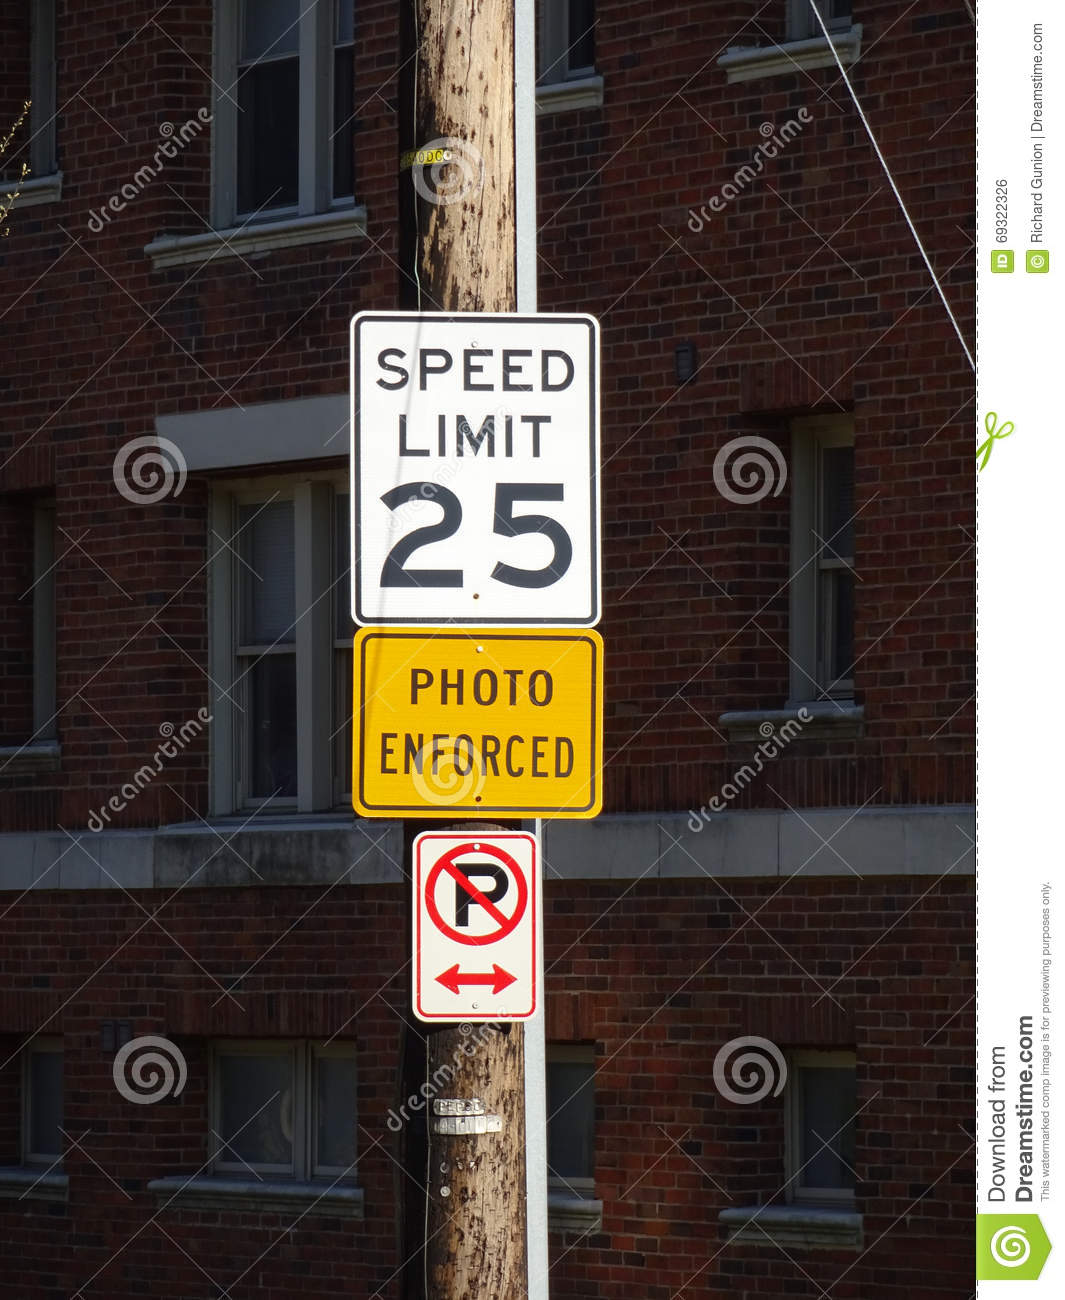 Speed Limit Sign In The City Stock Photo - Image of signs